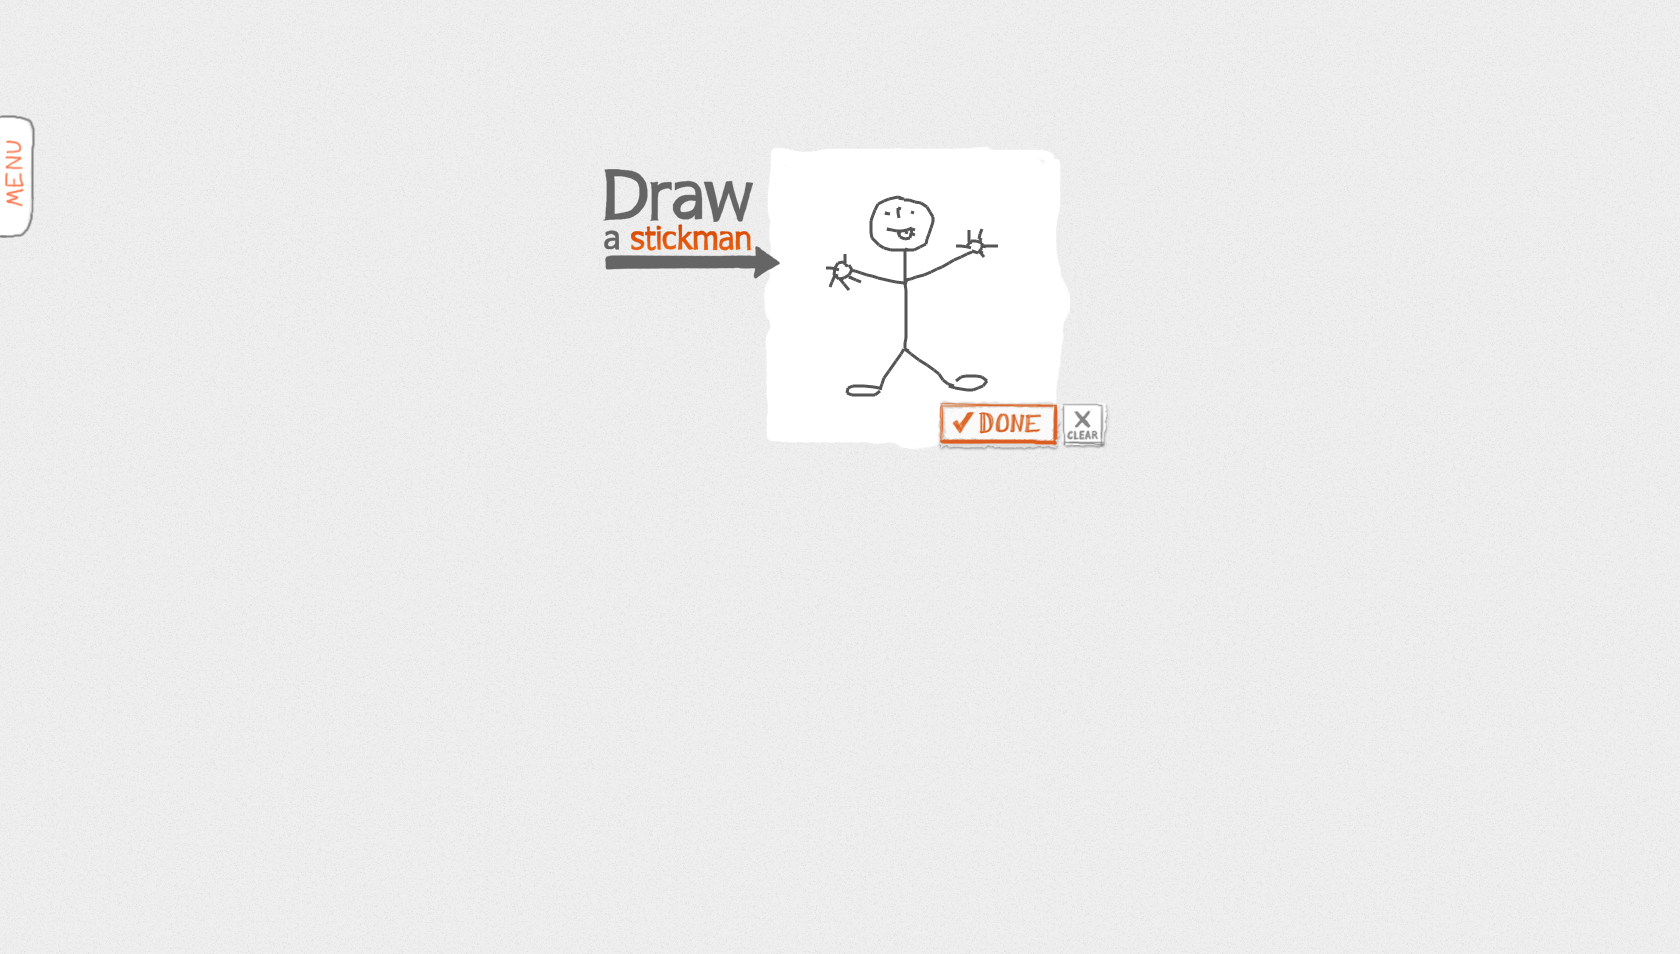 draw a stick man